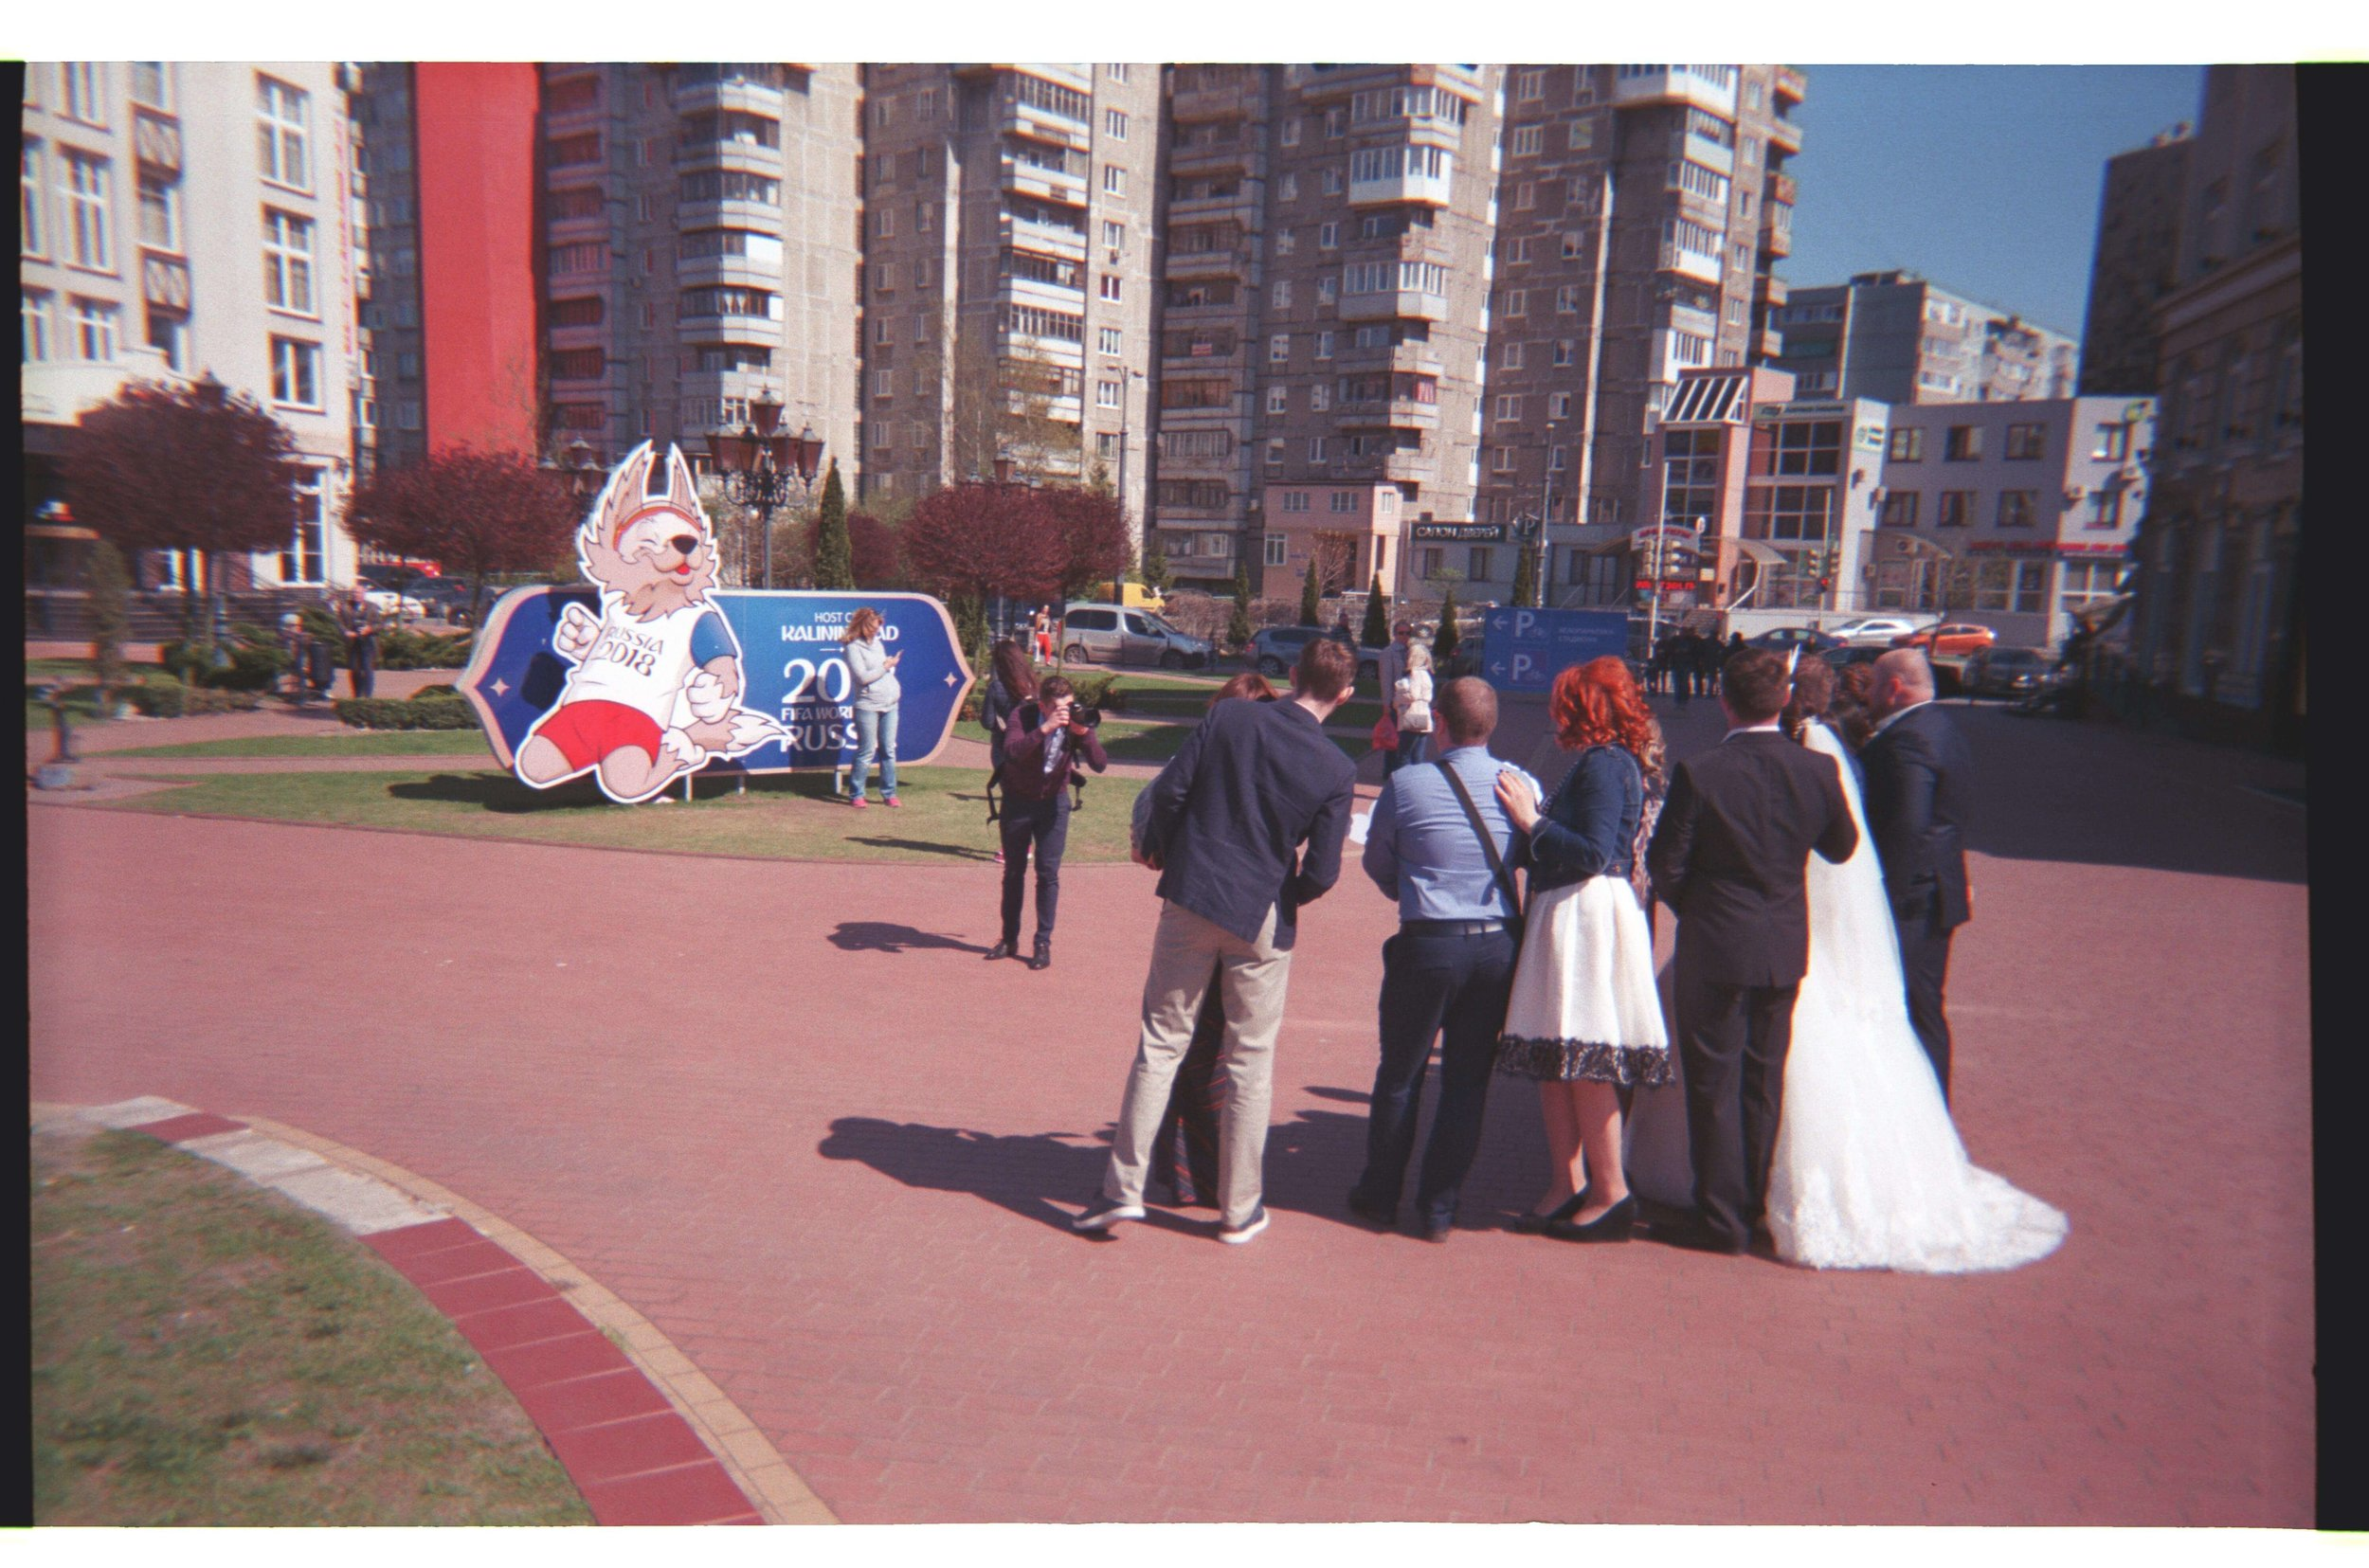 A wedding party being photographed in Kaliningrad.